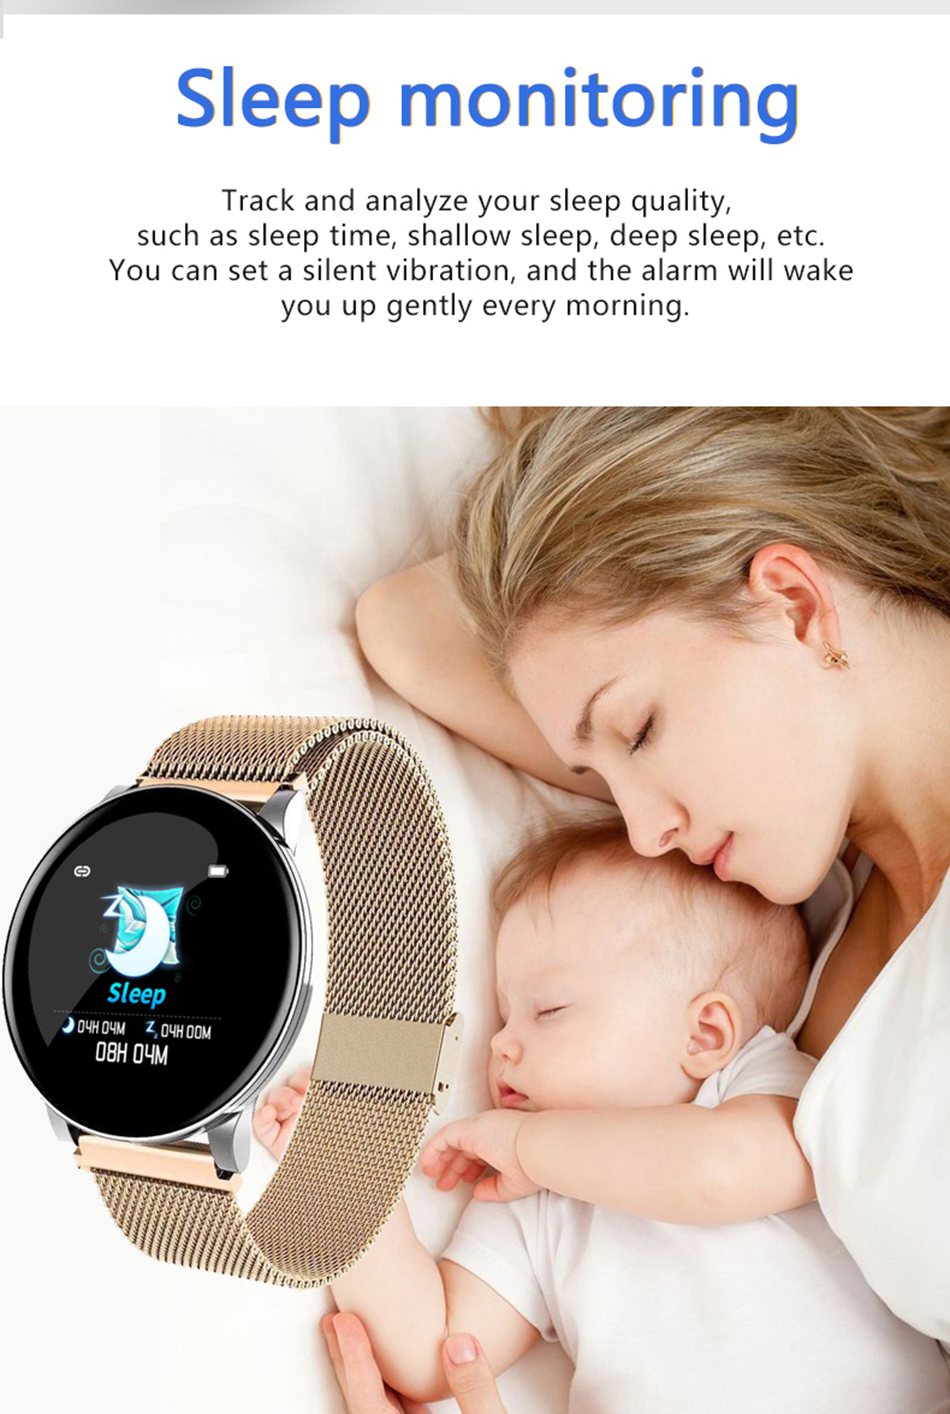 H177f5f30155547ae88a0091919d6837ep BINSSAW Couples Smart Watch Kid Heart Rate Blood Pressure Dynamic Fitness Tracker Wearable Electronics Devices Smart Sport Watch